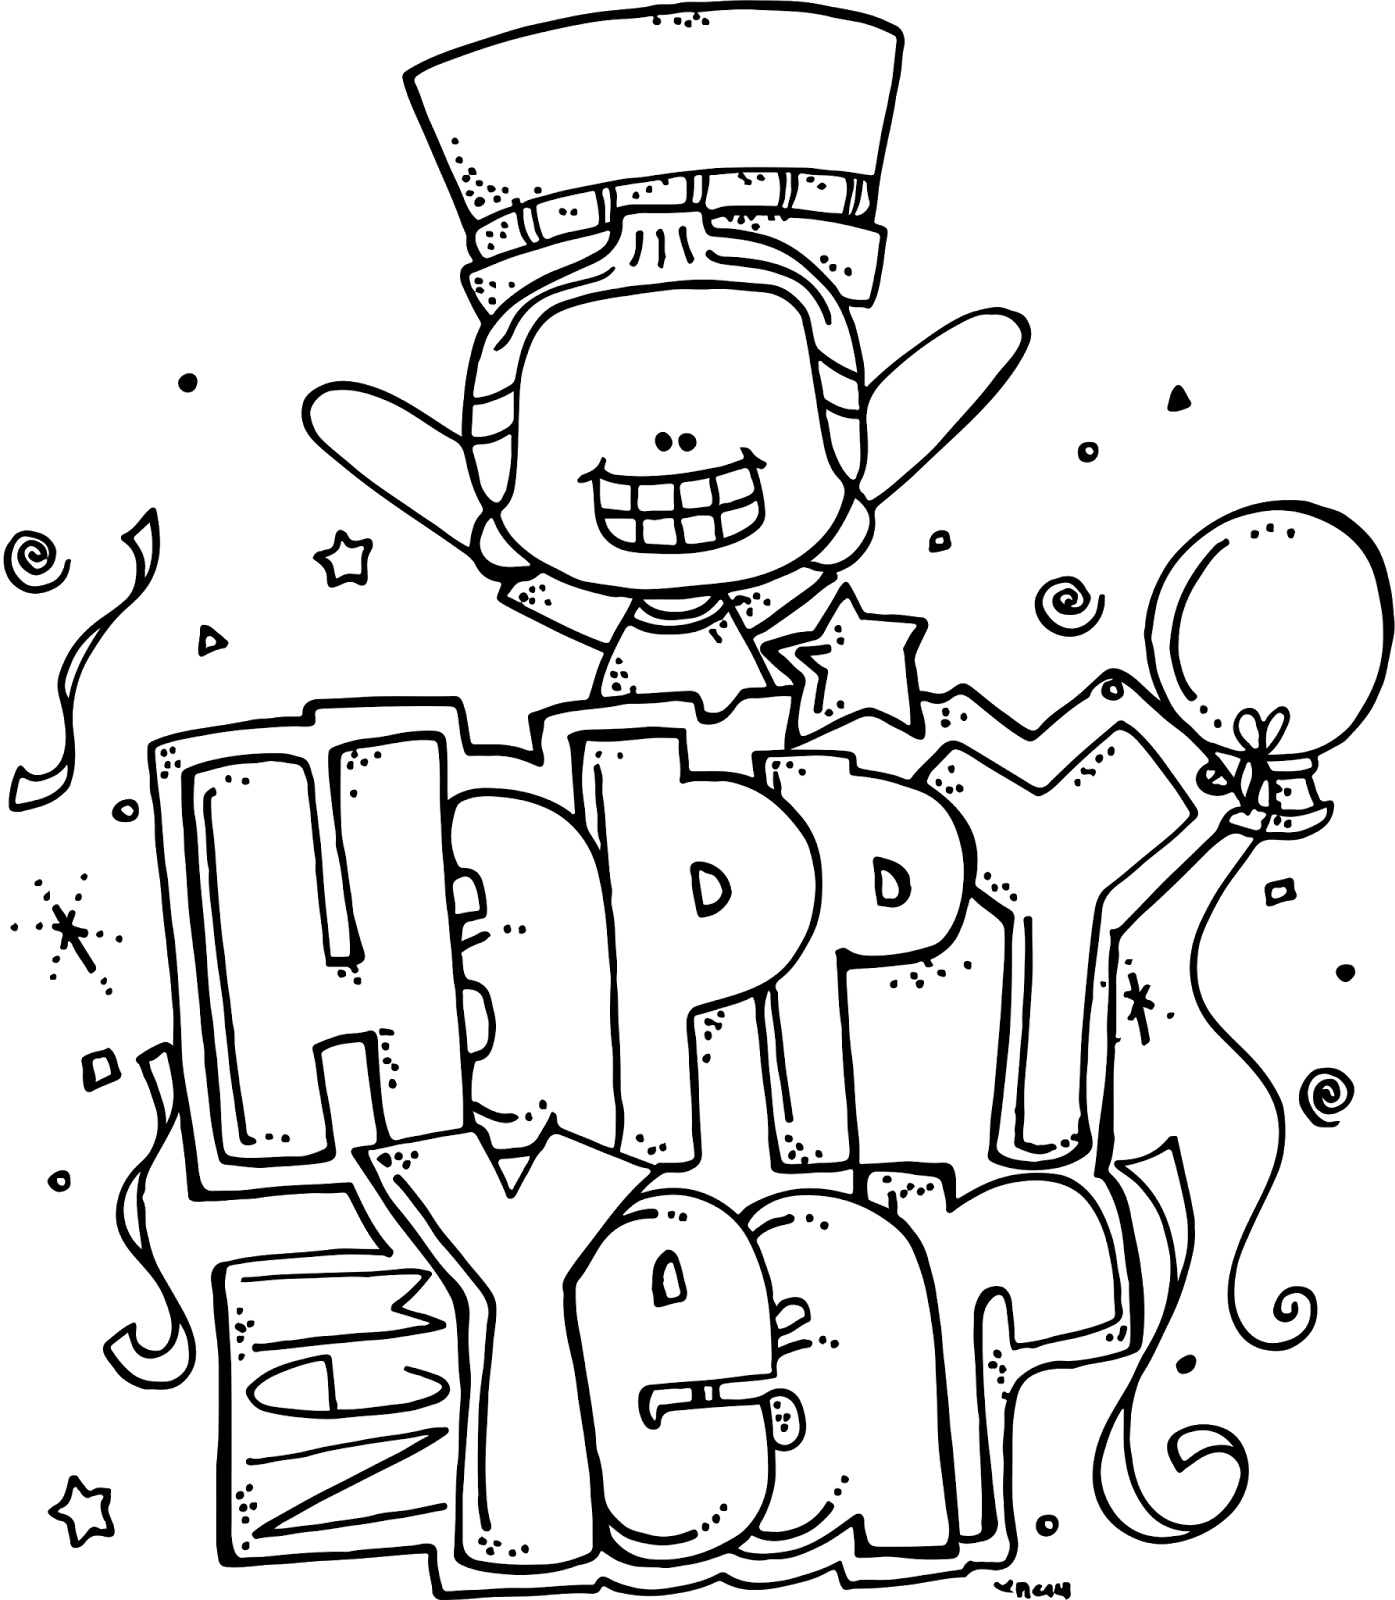 picture transparent library Happy new year clipart black and white. Melonheadz illustrating freebie ideas